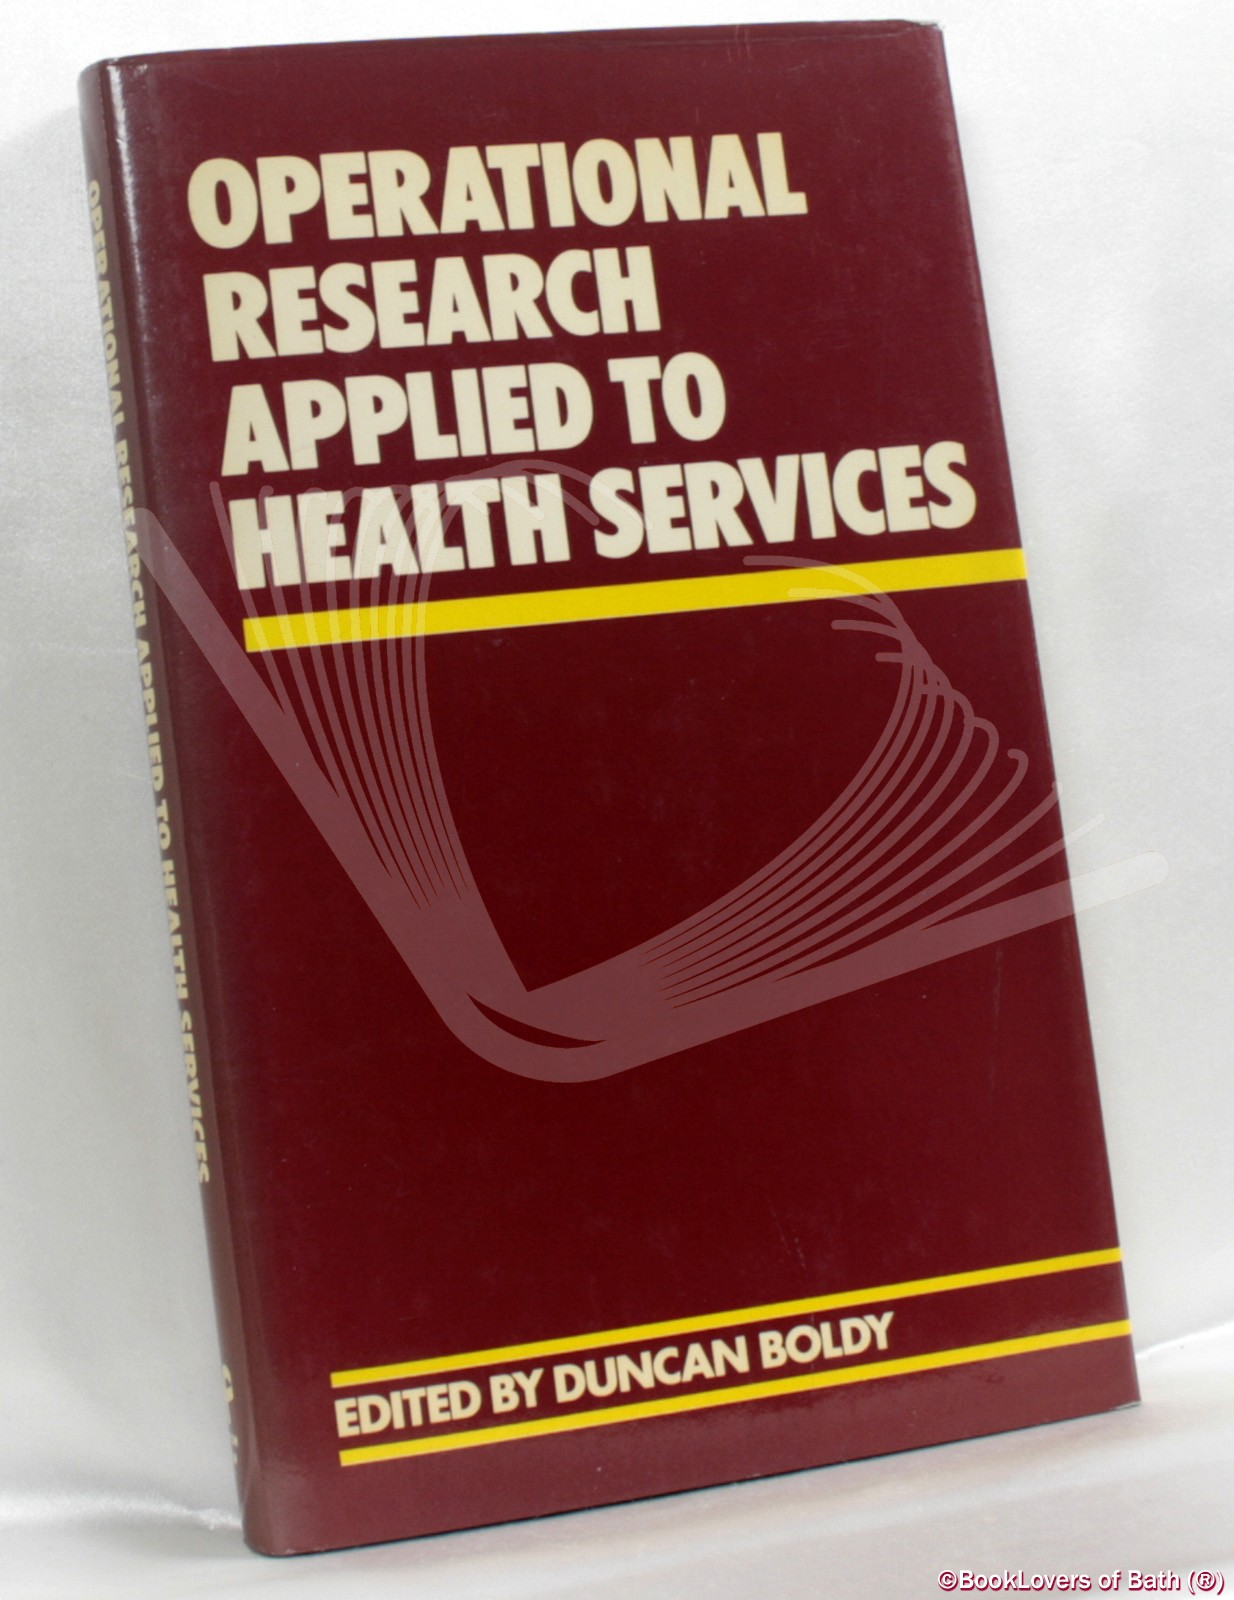 Operational Research Applied to Health Services - Edited by Duncan Boldy